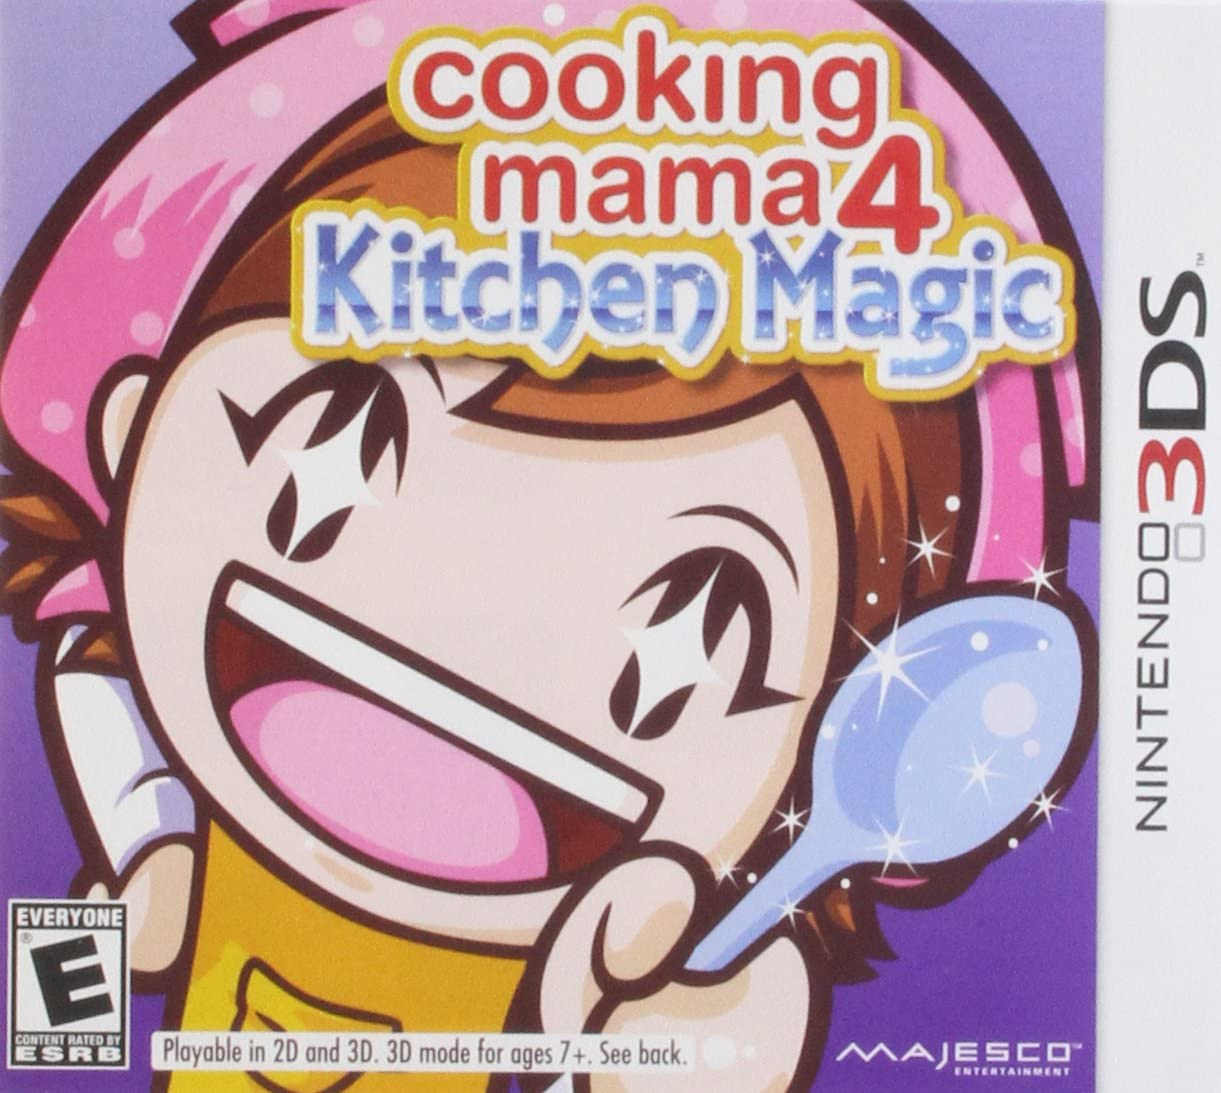 Amazon.com: Cooking Mama 4: Kitchen Magic - Nintendo 3DS: Video Games